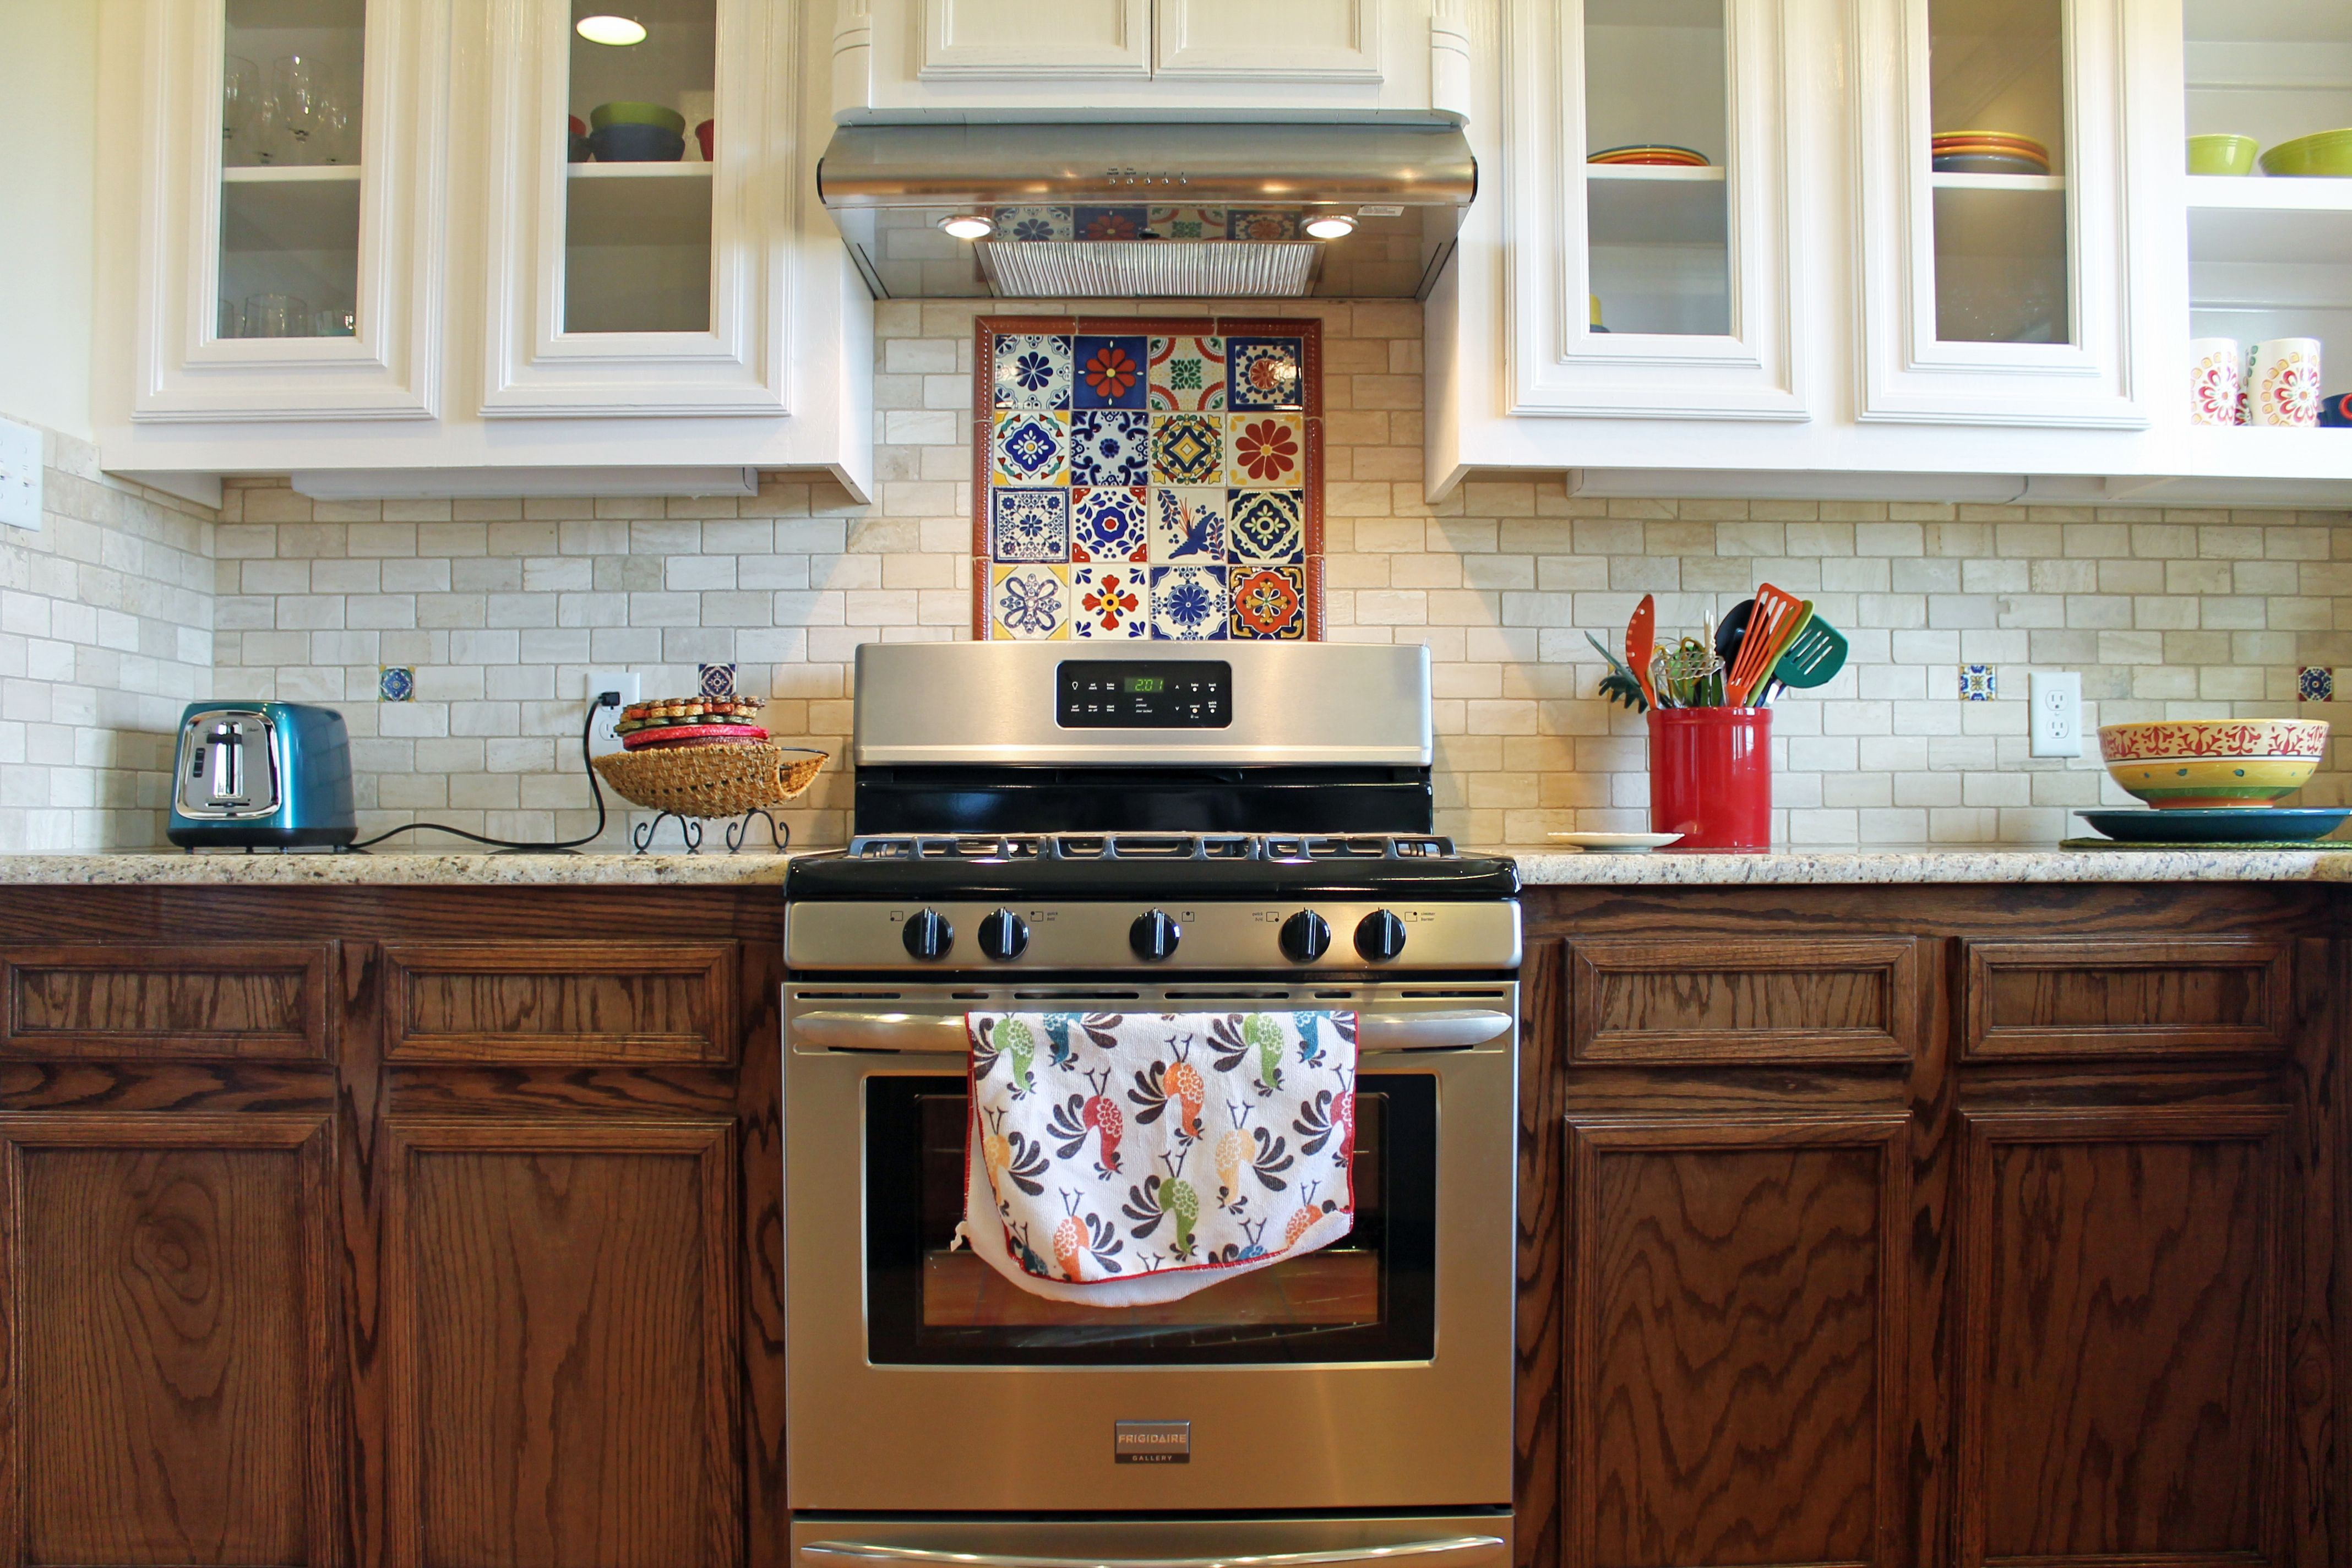 Spanish Tile Countertops Spanish Kitchen Design Talavera Tile Backsplash Ideas